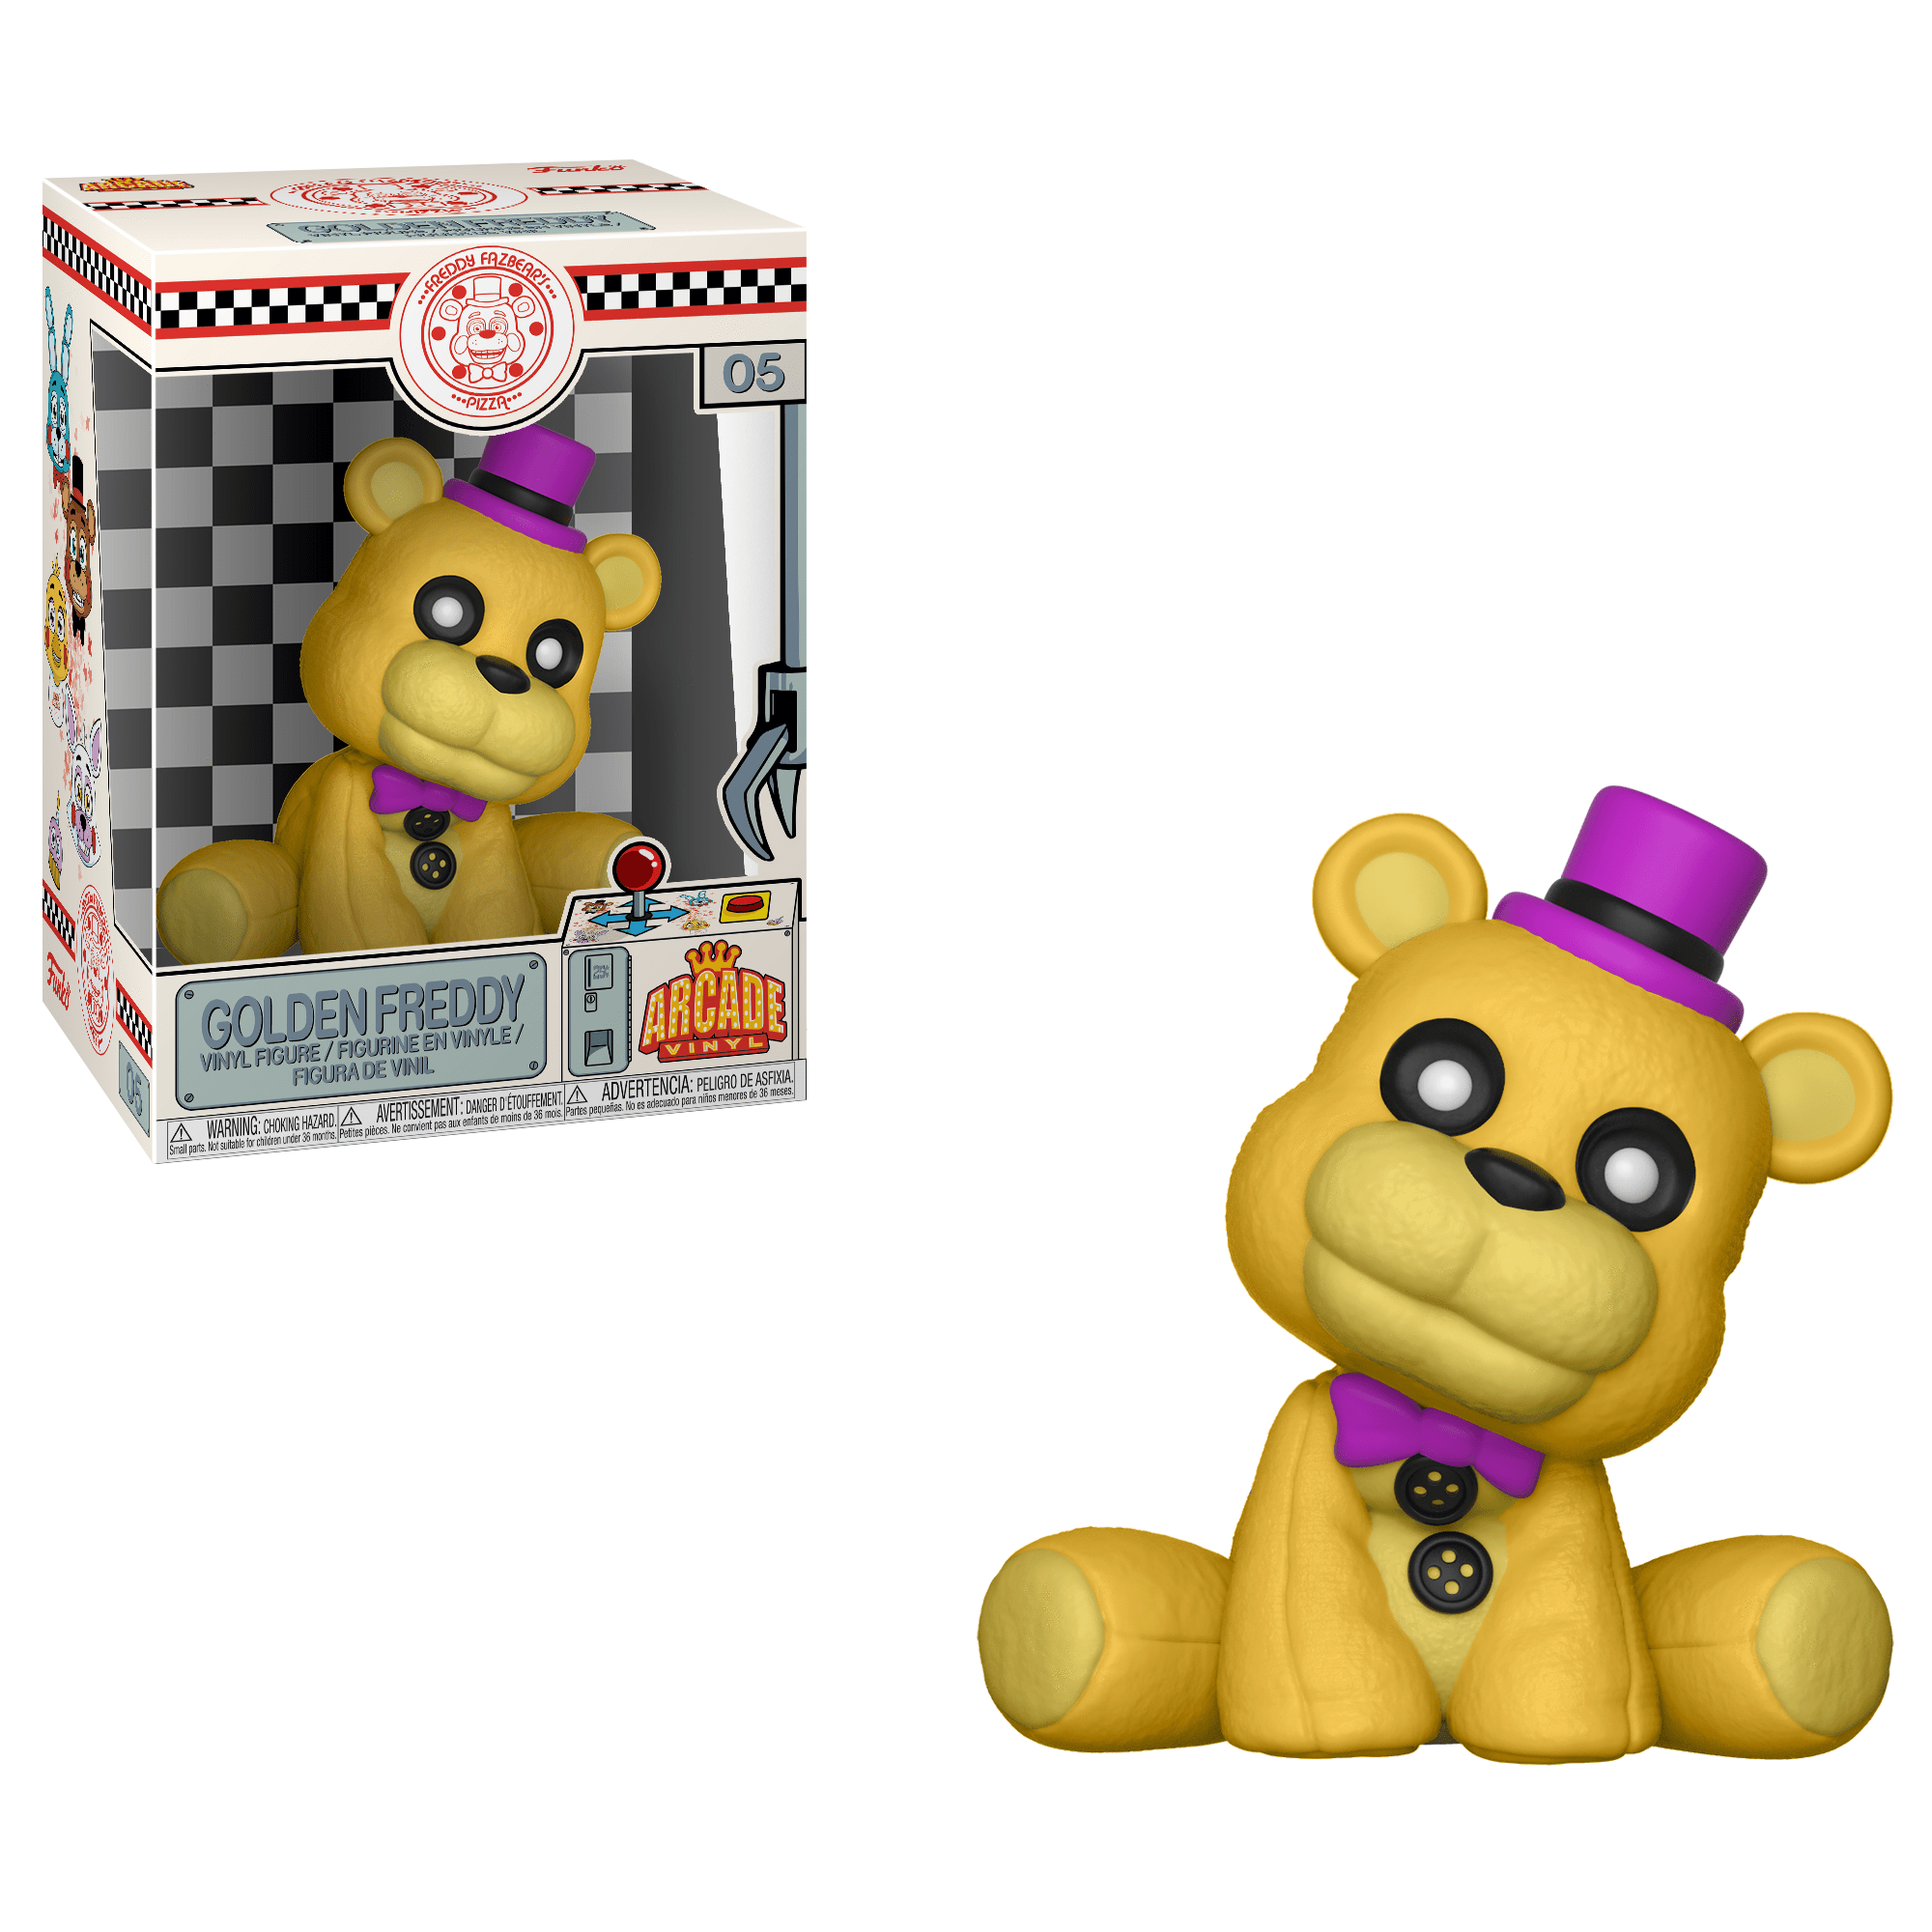 Funko Pop! Games - Five Nights at Freddy's Arcade Vinyl #5 - Golden Freddy - Simply Toys